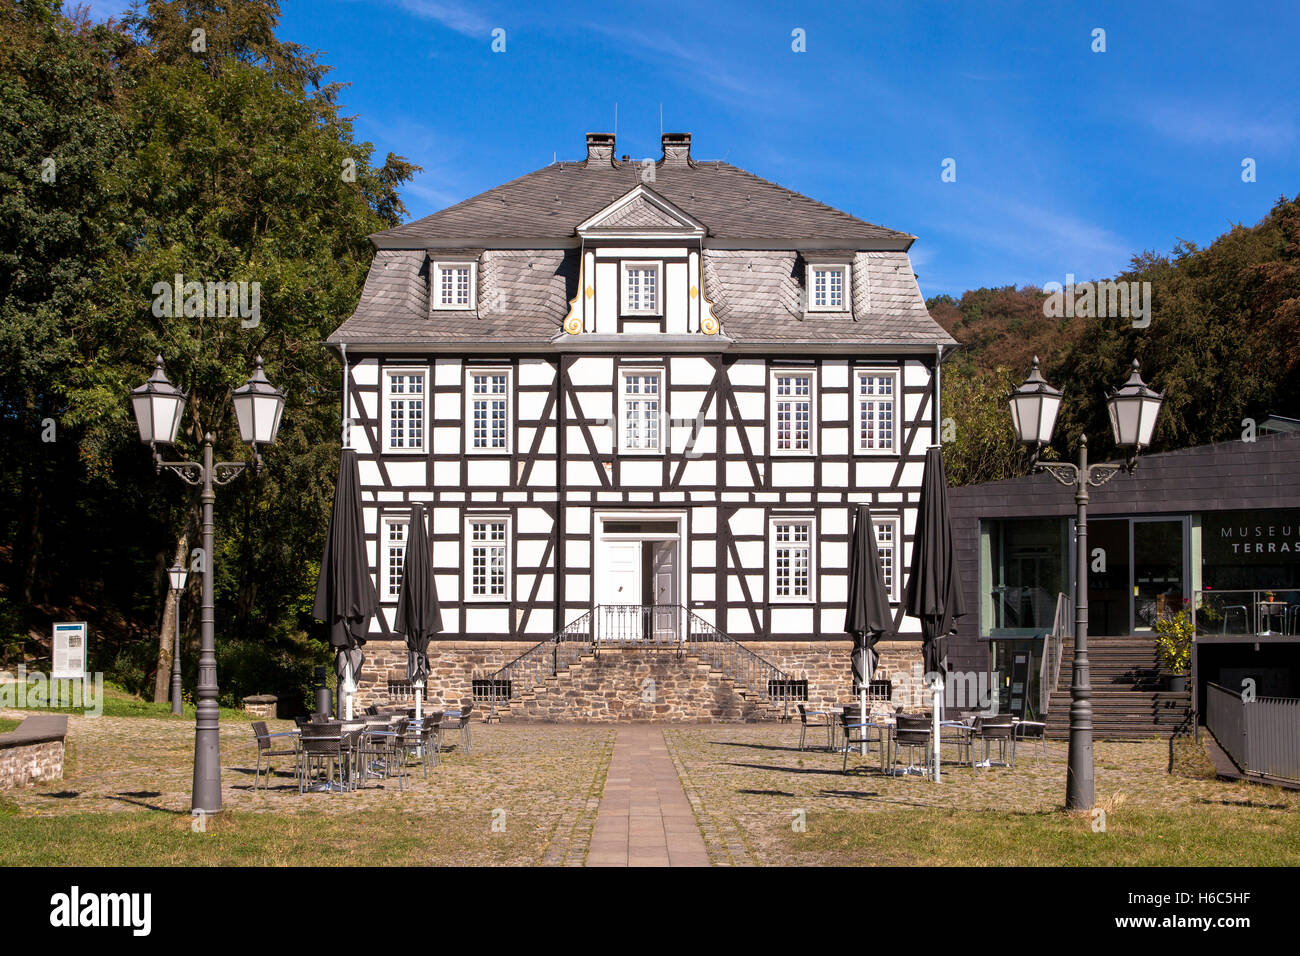 Germany, Hagen, Hagen Open-air Museum, half-timbered house, this building is home of the German Wrought Museum. Stock Photo